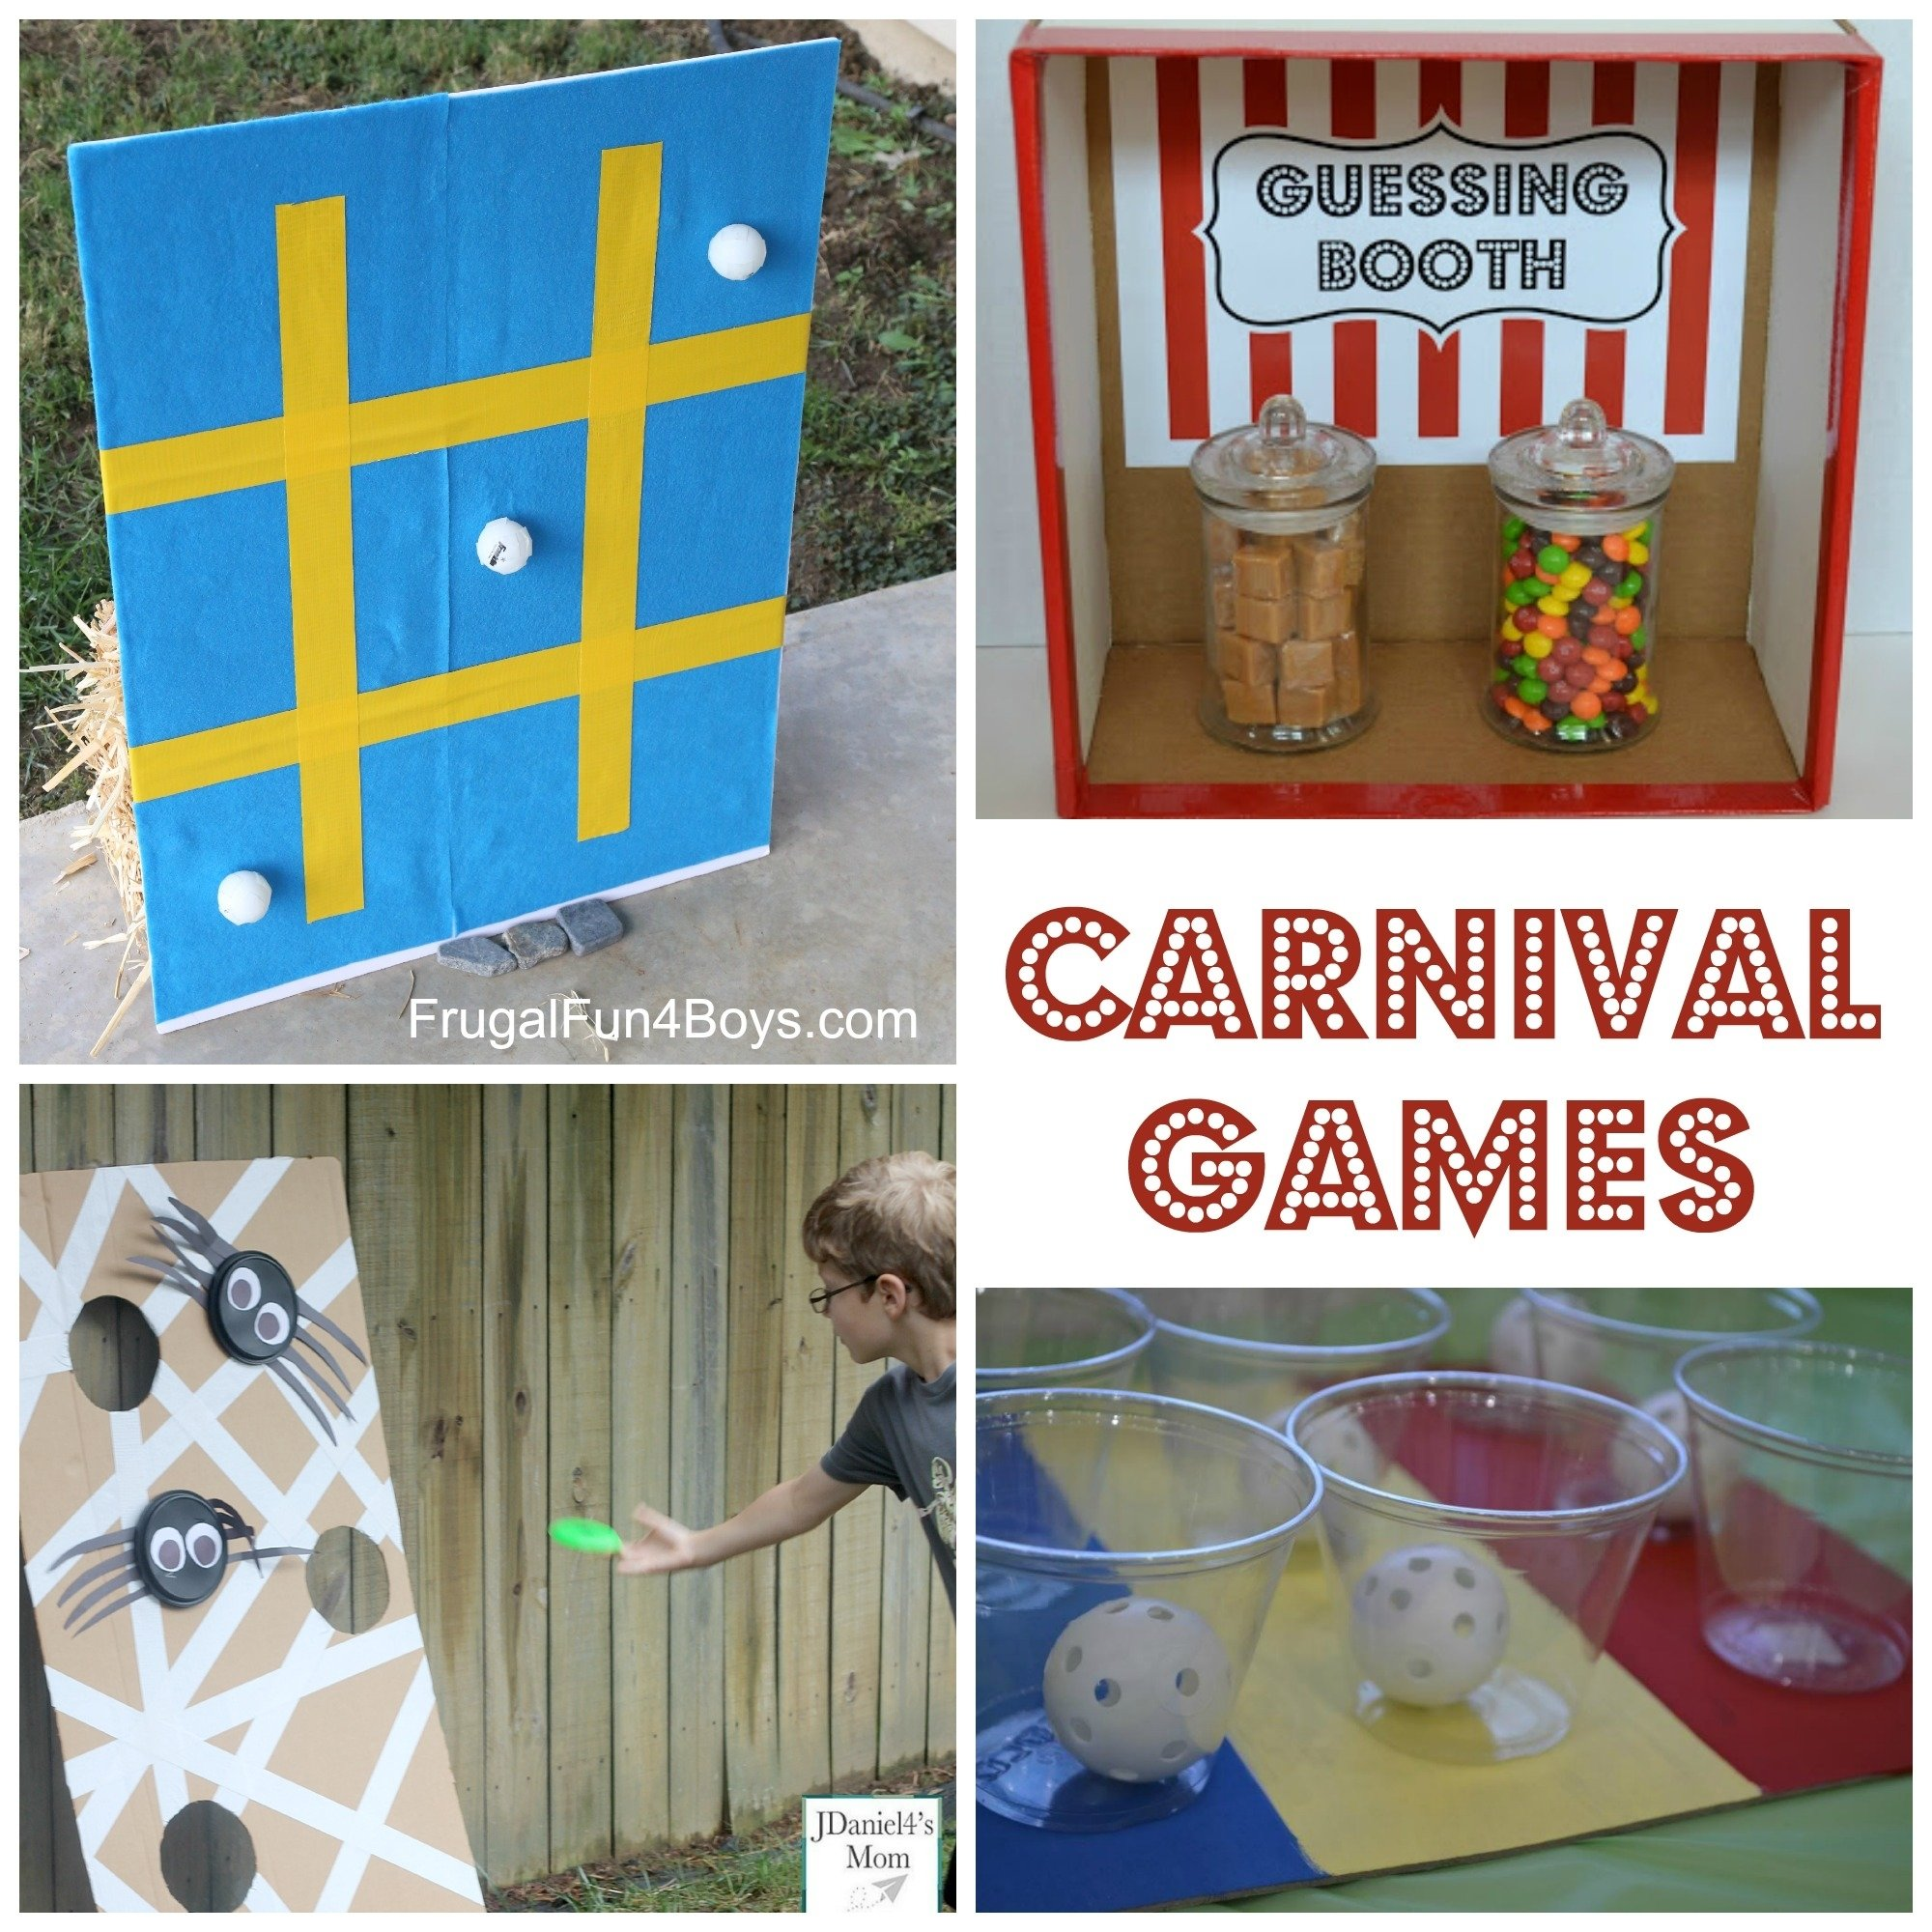 10 Fashionable Fun Game Ideas For Kids 25 simple carnival games for kids 1 2020